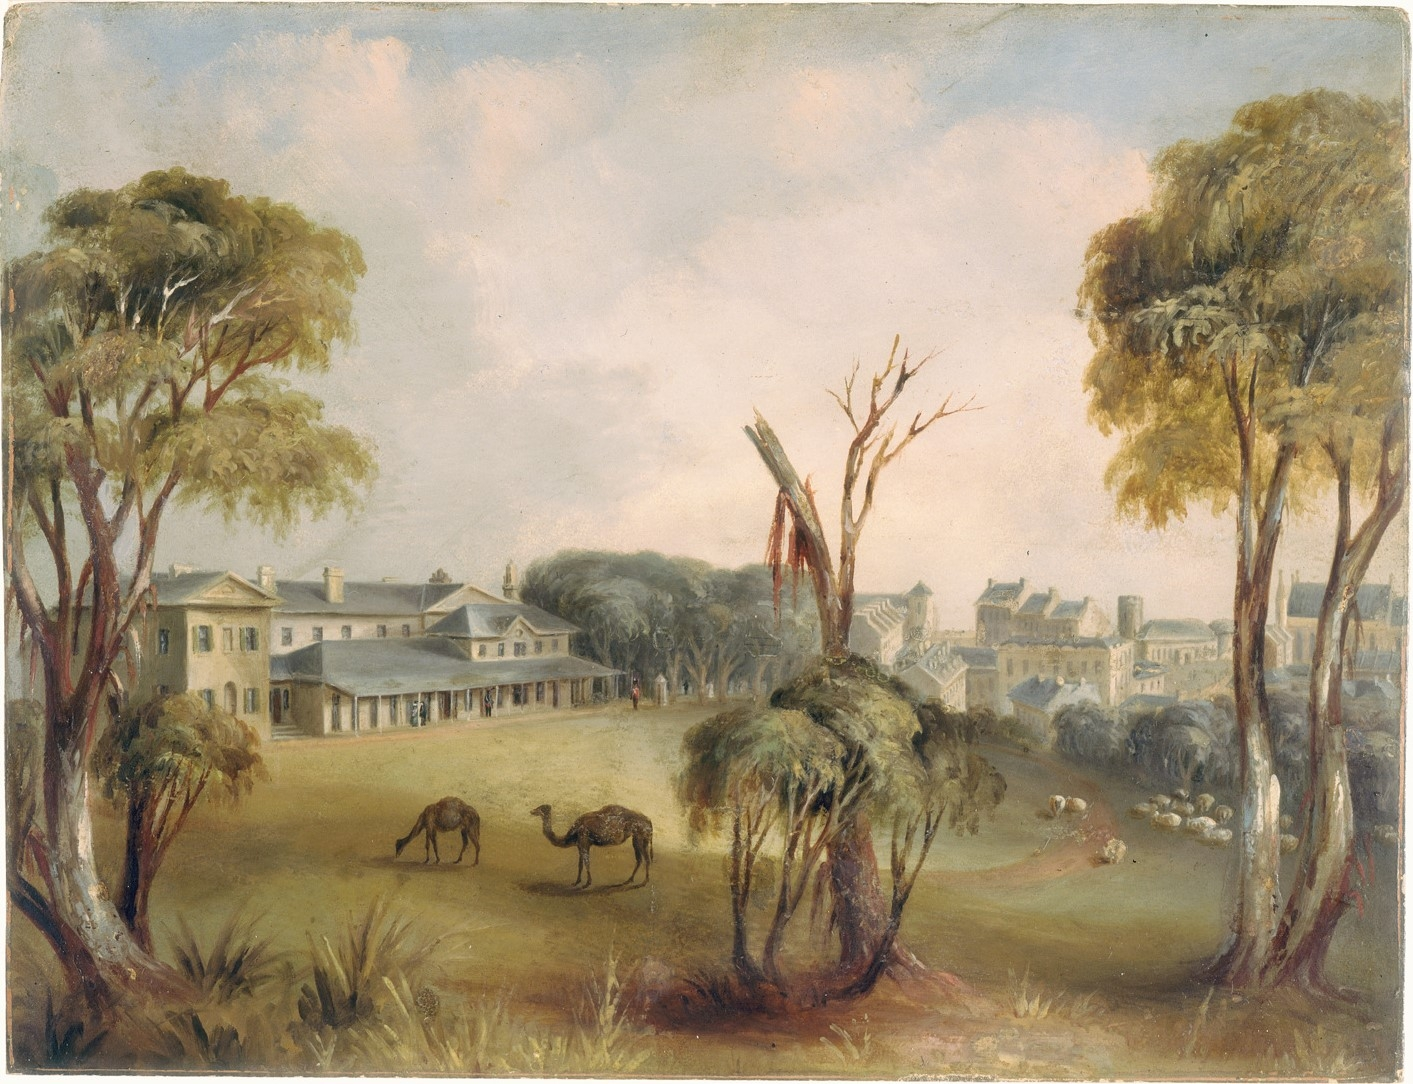 Painting of landscape with building in distance, a pair of camels grazing in centre and sheep to right.